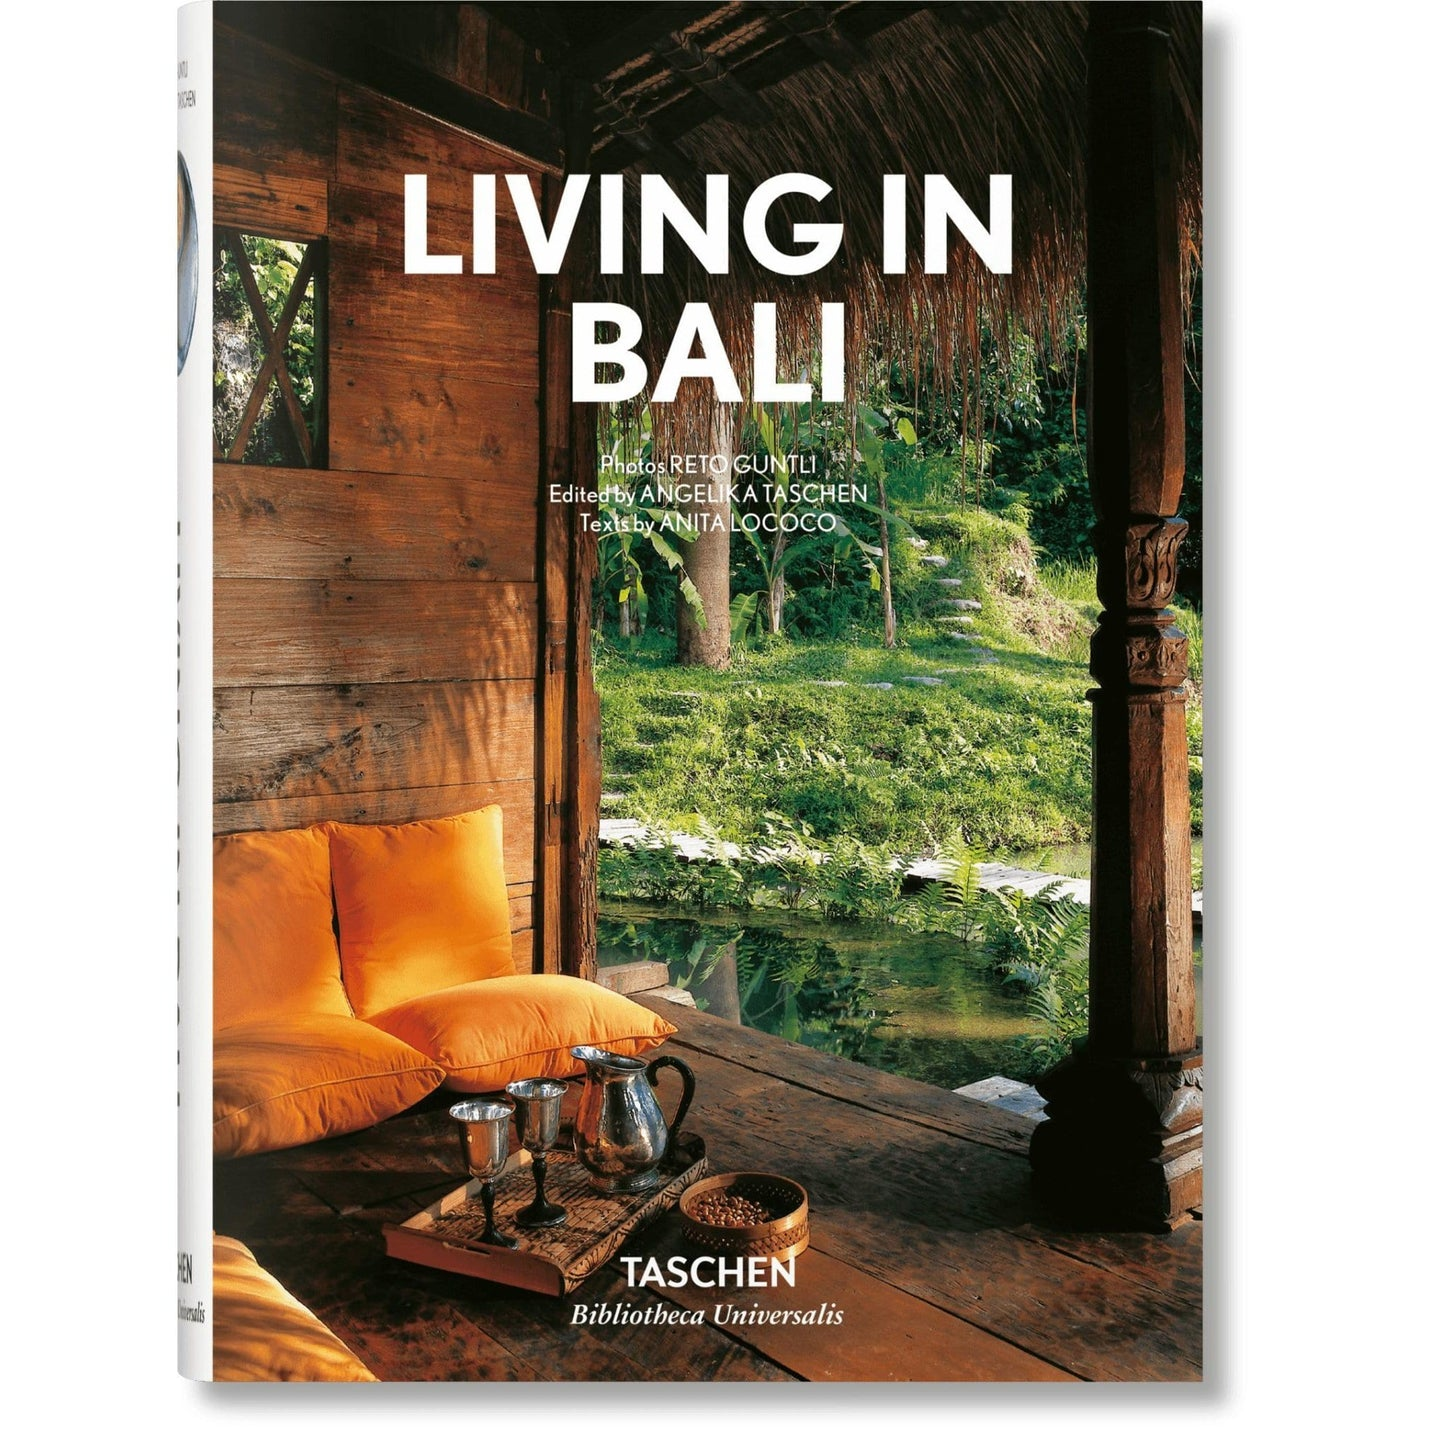 Taschen Living in Bali / Neighborhood Goods